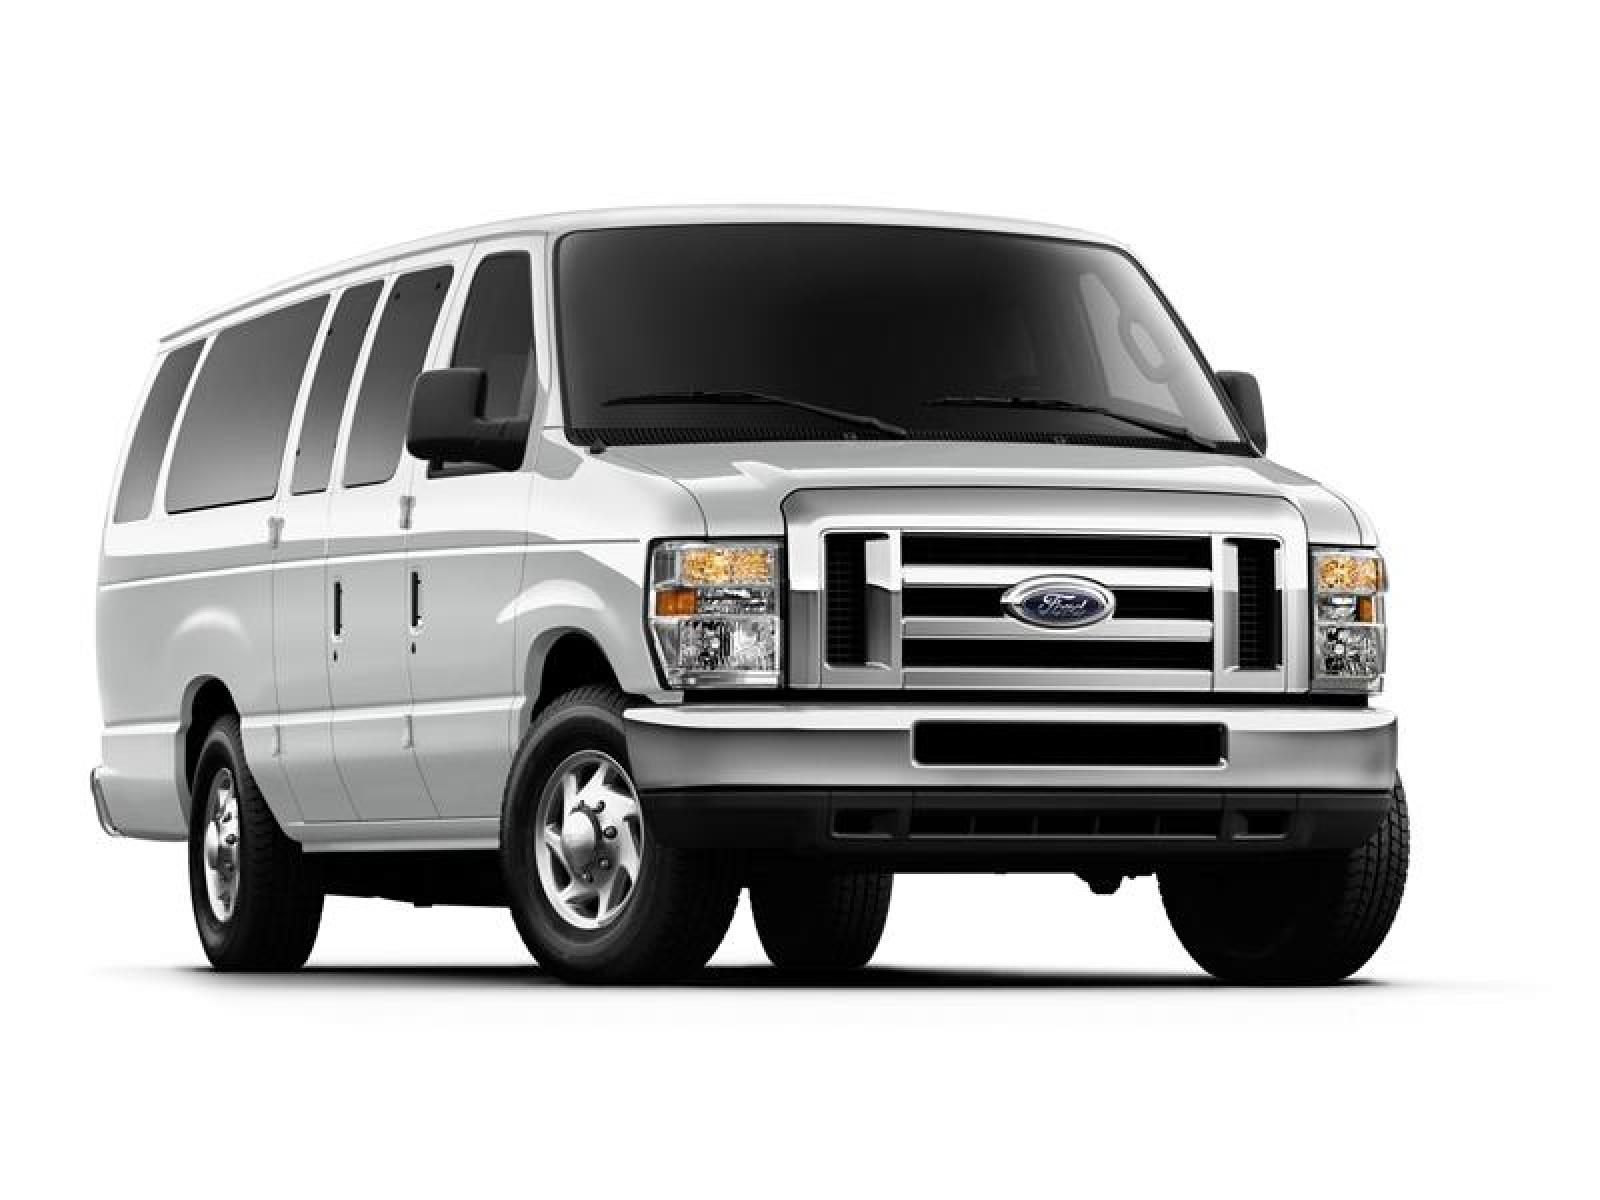 2011 ford e series van information and photos zombiedrive. Black Bedroom Furniture Sets. Home Design Ideas